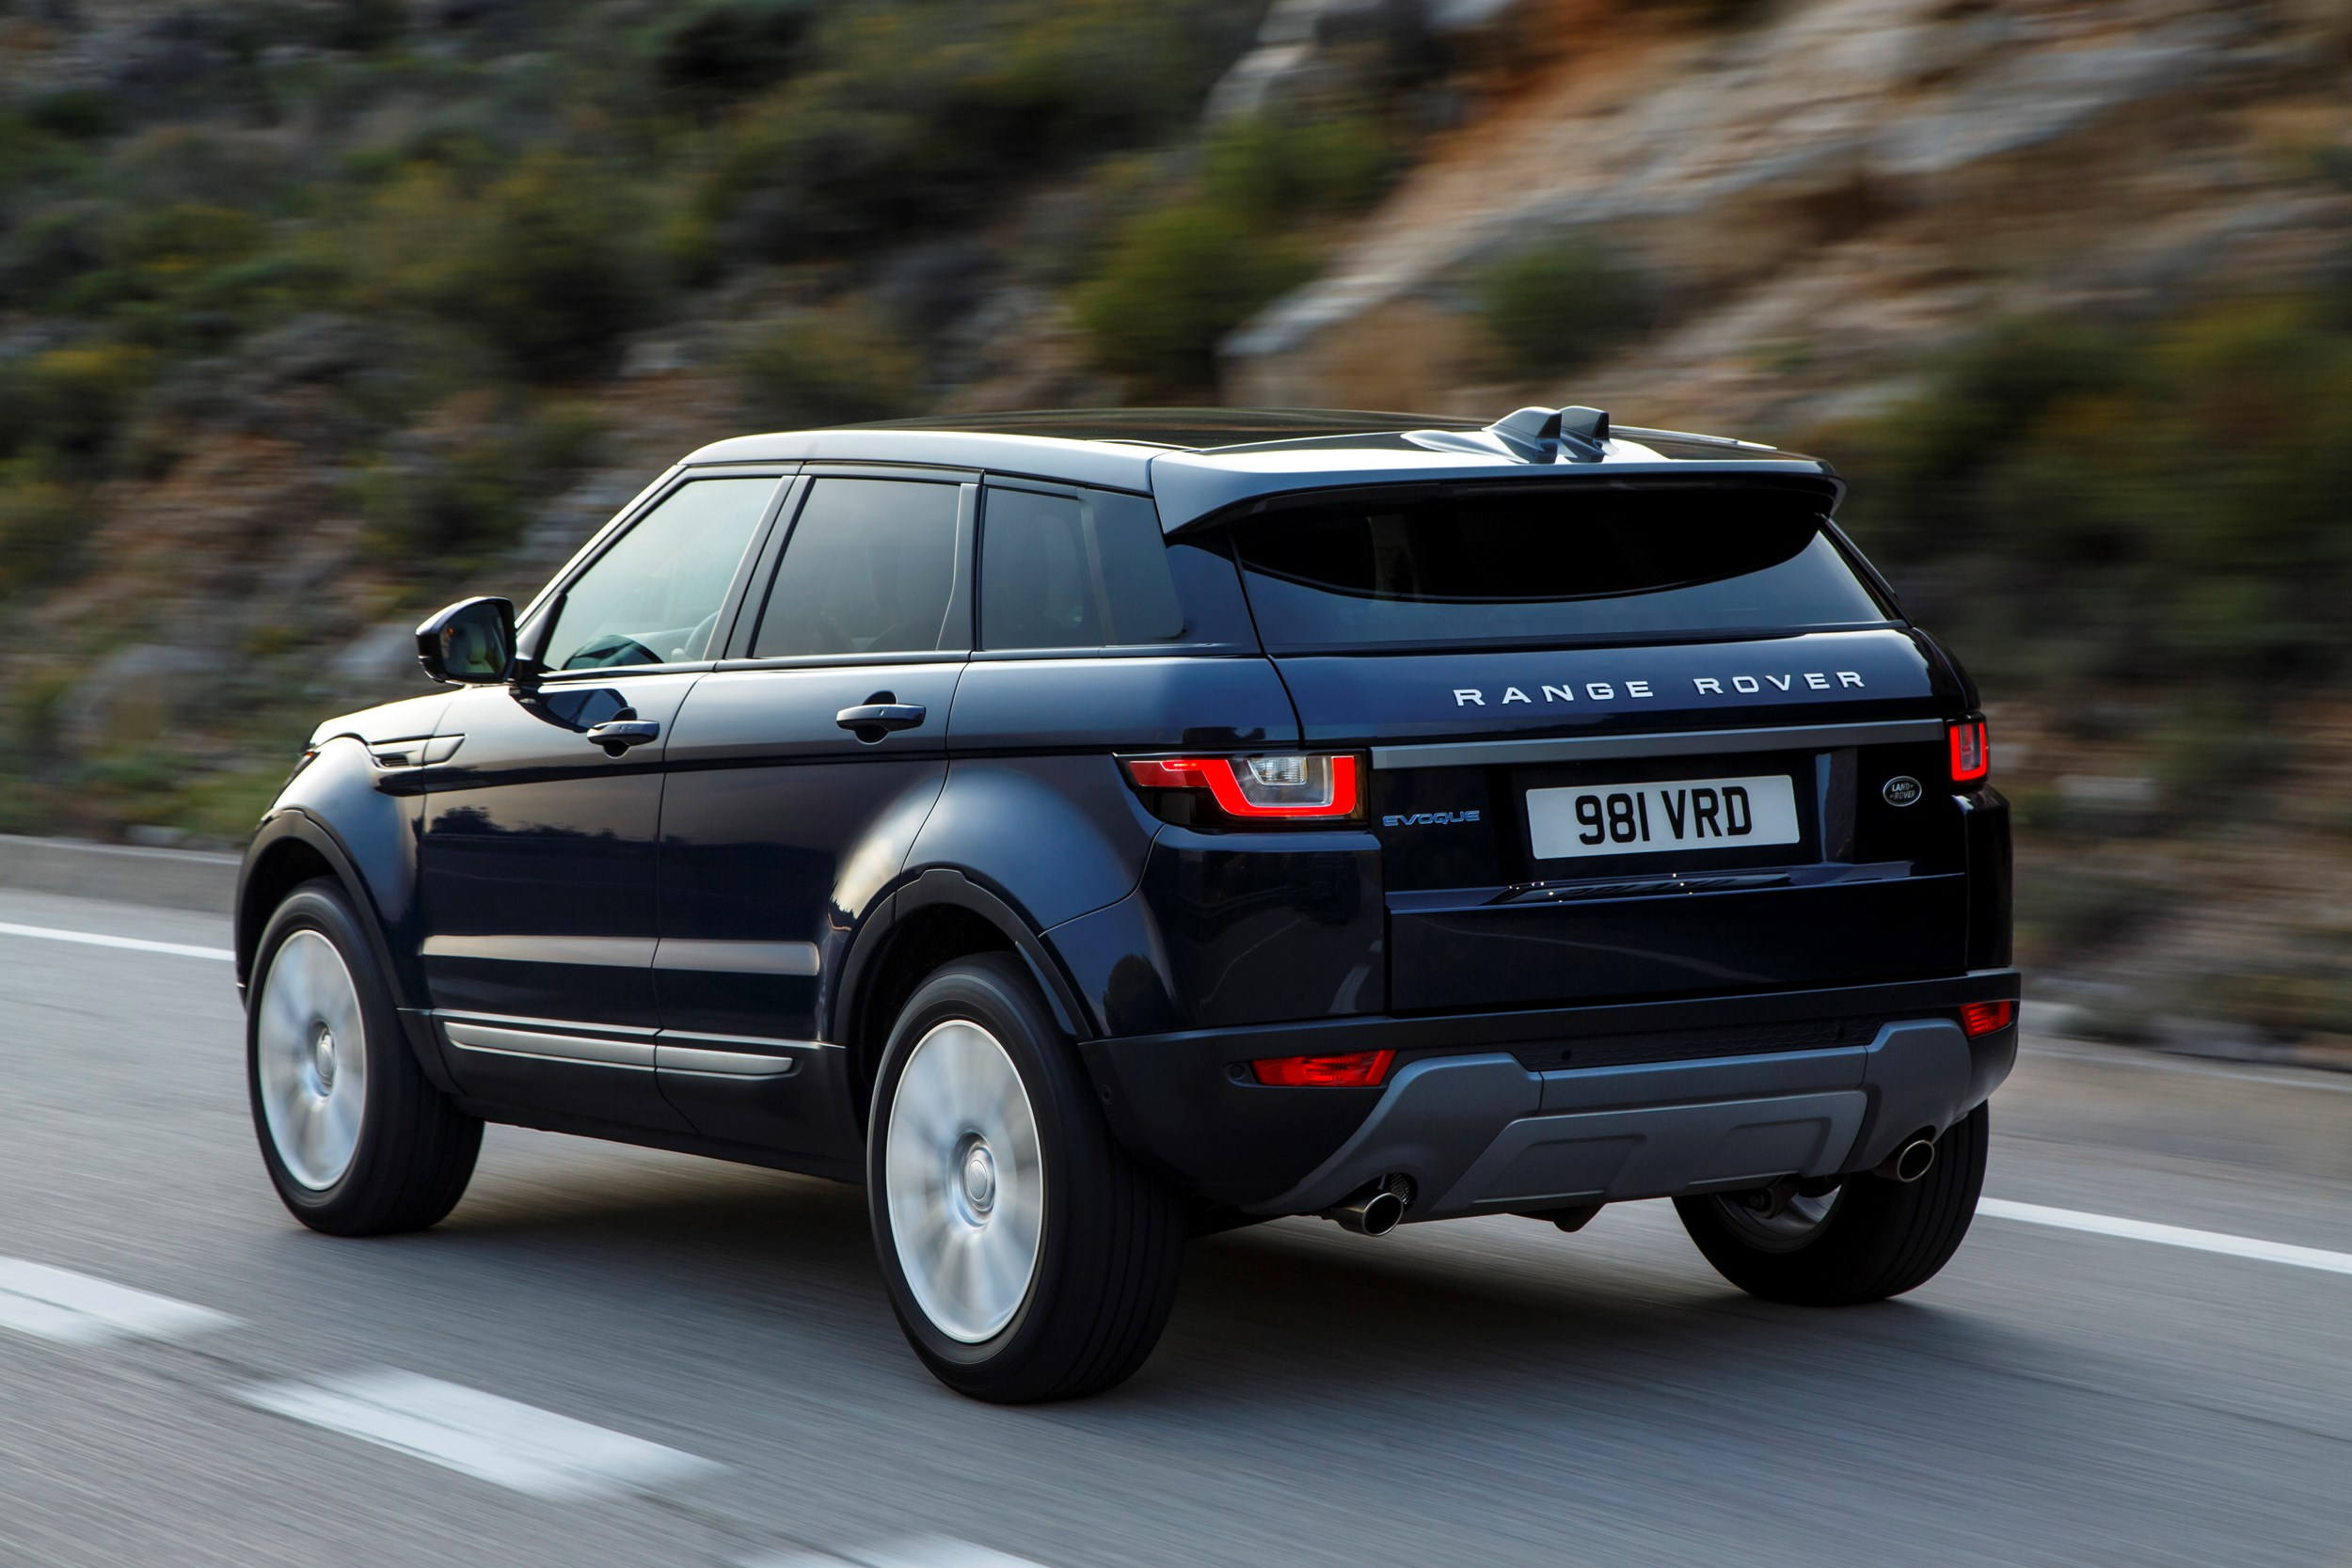 dfca154875d First drive  Range Rover Evoque 2.0 ED4 SE Tech car review